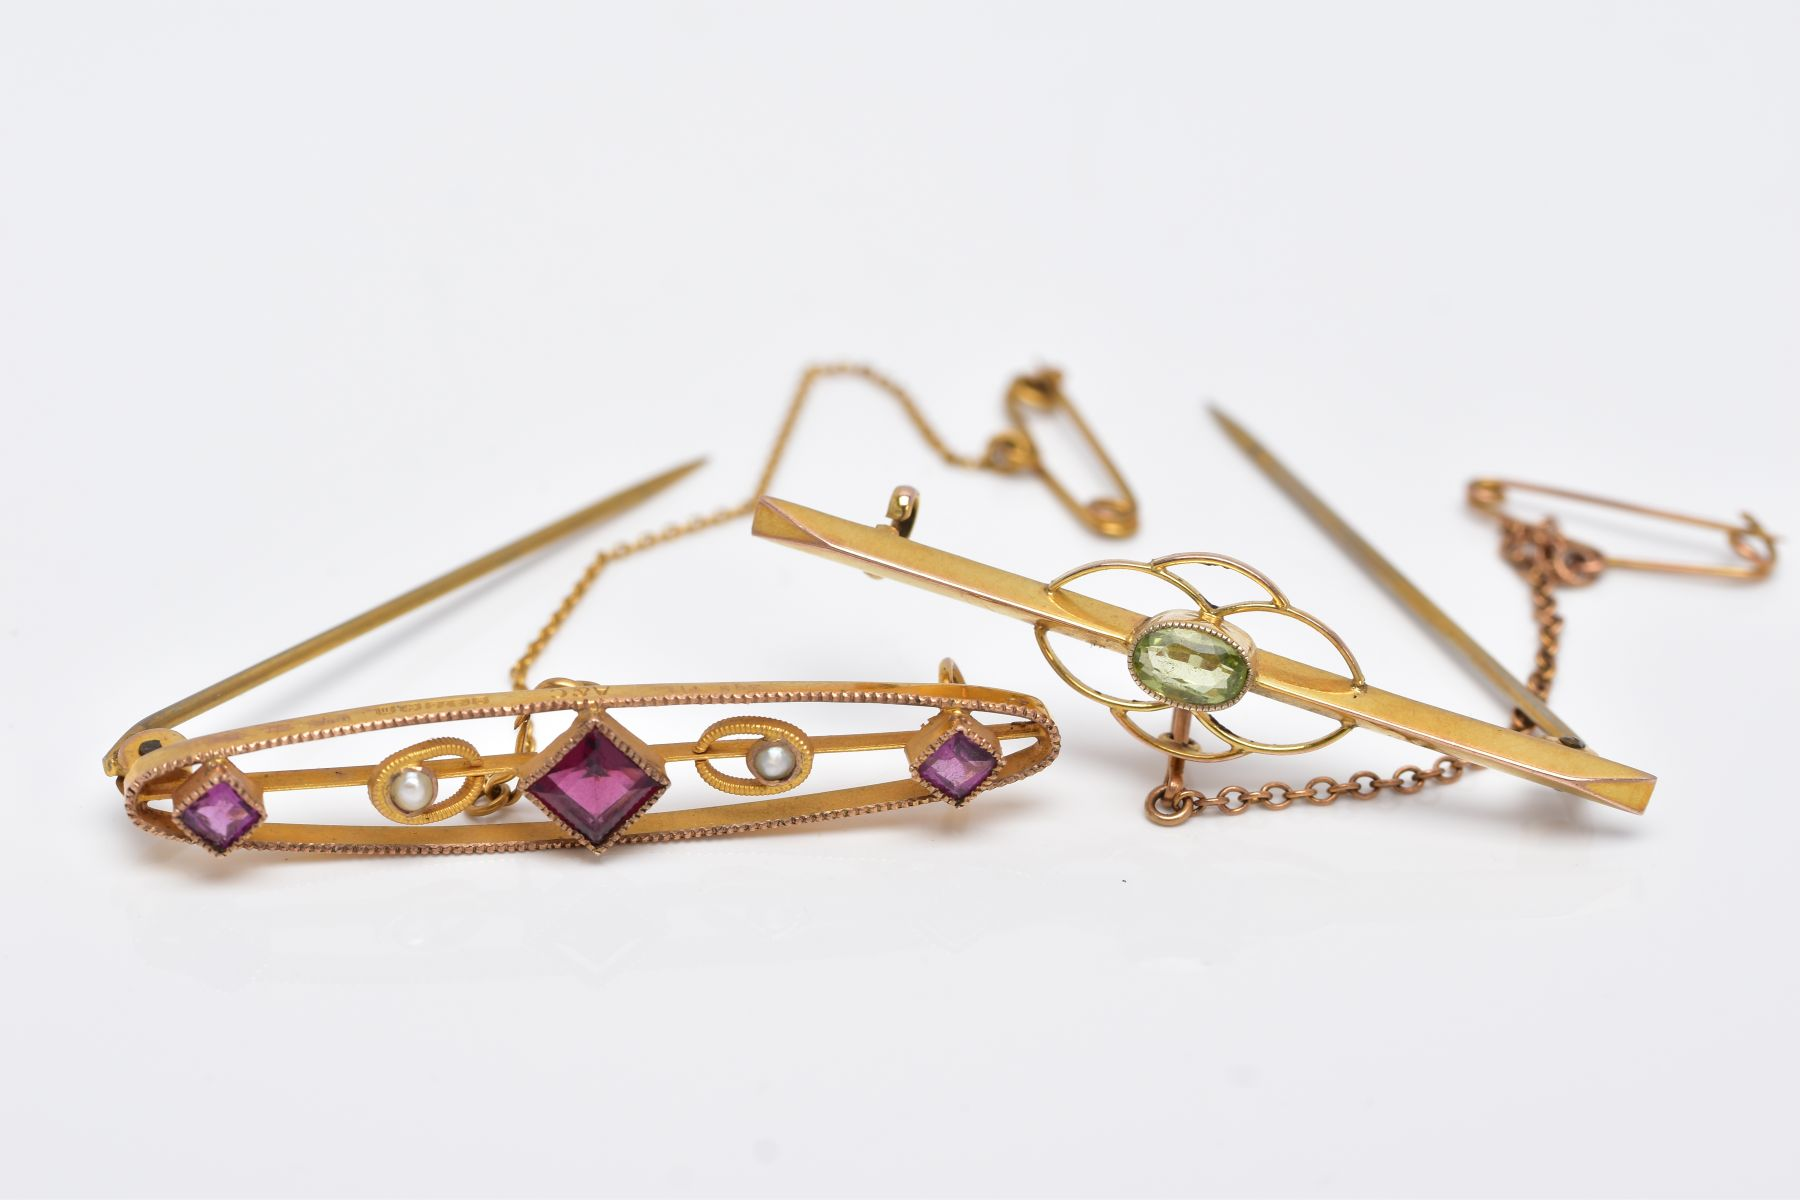 TWO EARLY 20TH CENTURY BAR BROOCHES, a 9ct gold amethyst garnet and seed pearl brooch, hallmarked